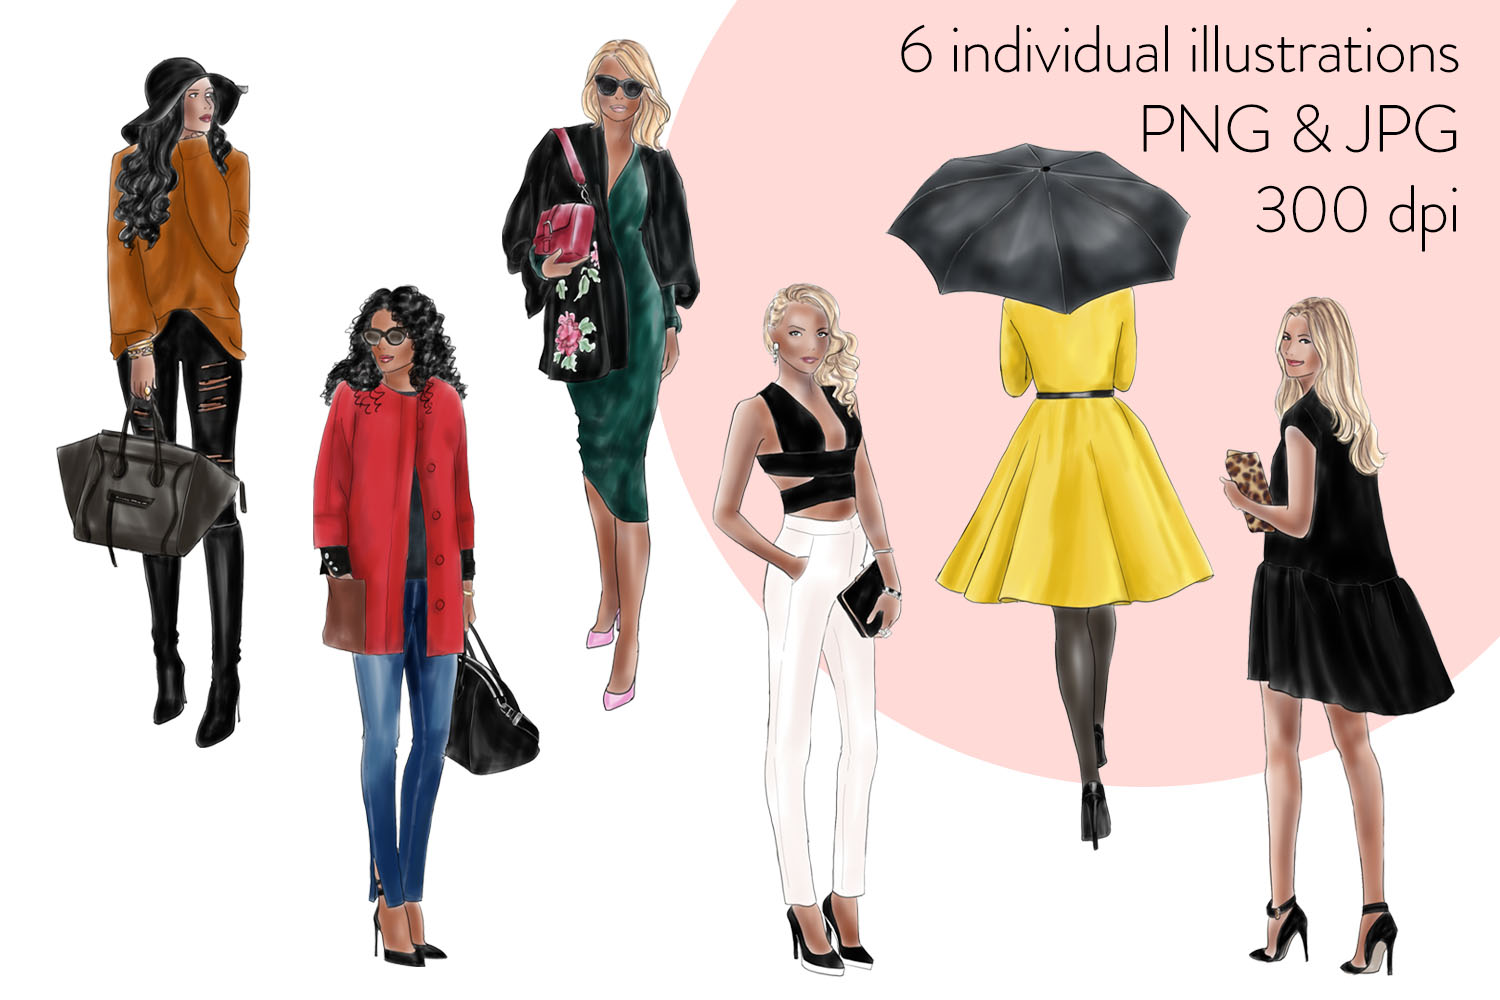 Fashion illustration clipart - fashion Girls Volume 11 - dark skin example image 4